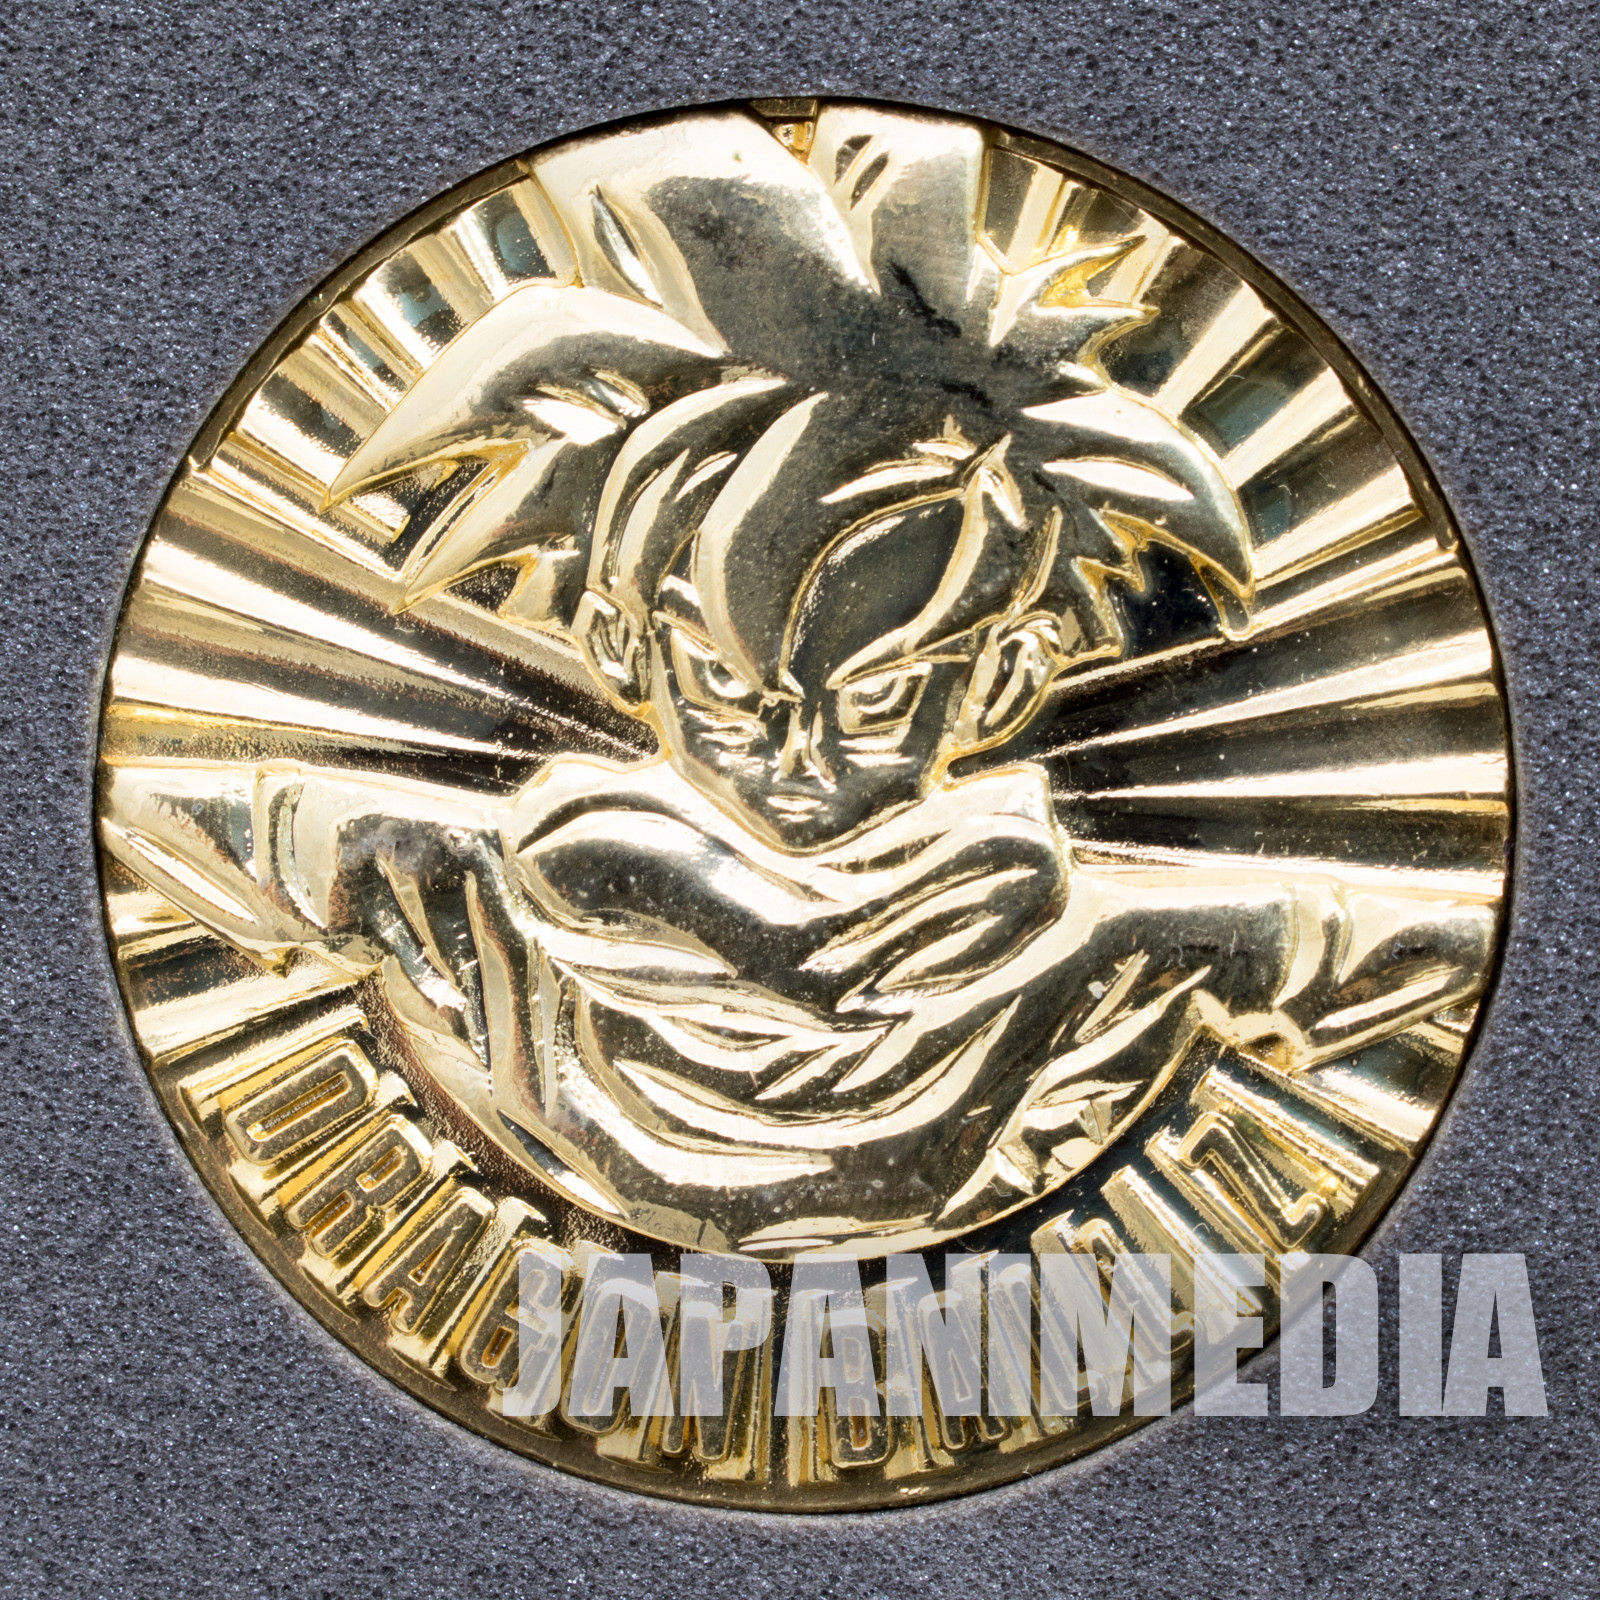 Dragon Ball Z Toei Anime Fair Medal Super Saiyan Son Gohan JAPAN ANIME